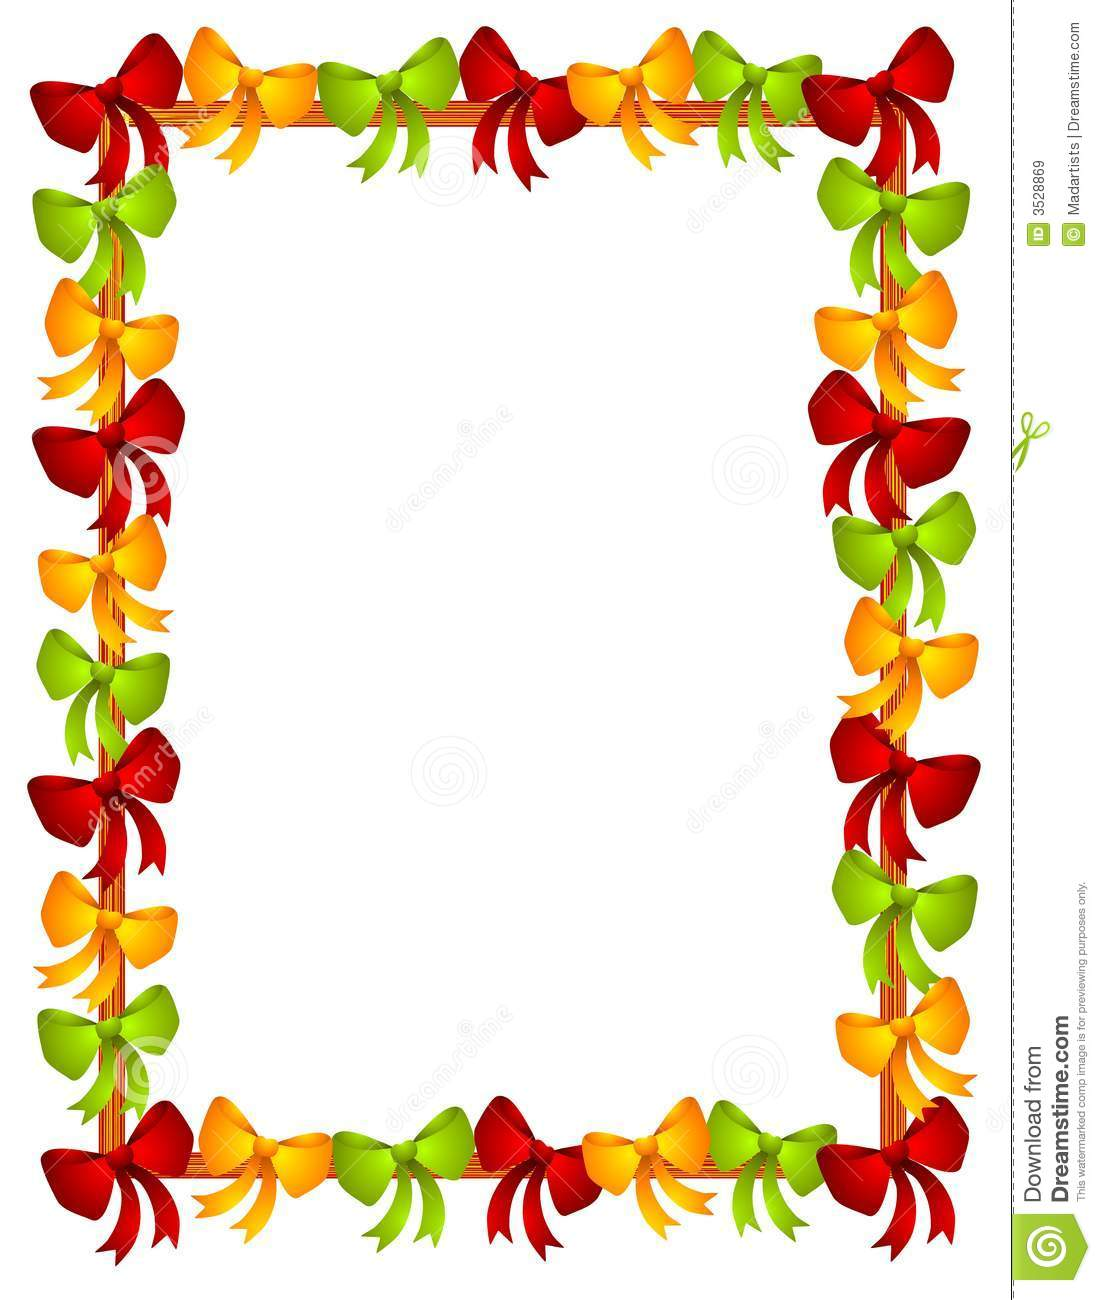 Photo frame images free download clipart clip freeuse Borders And Frames Clipart | Free download best Borders And Frames ... clip freeuse